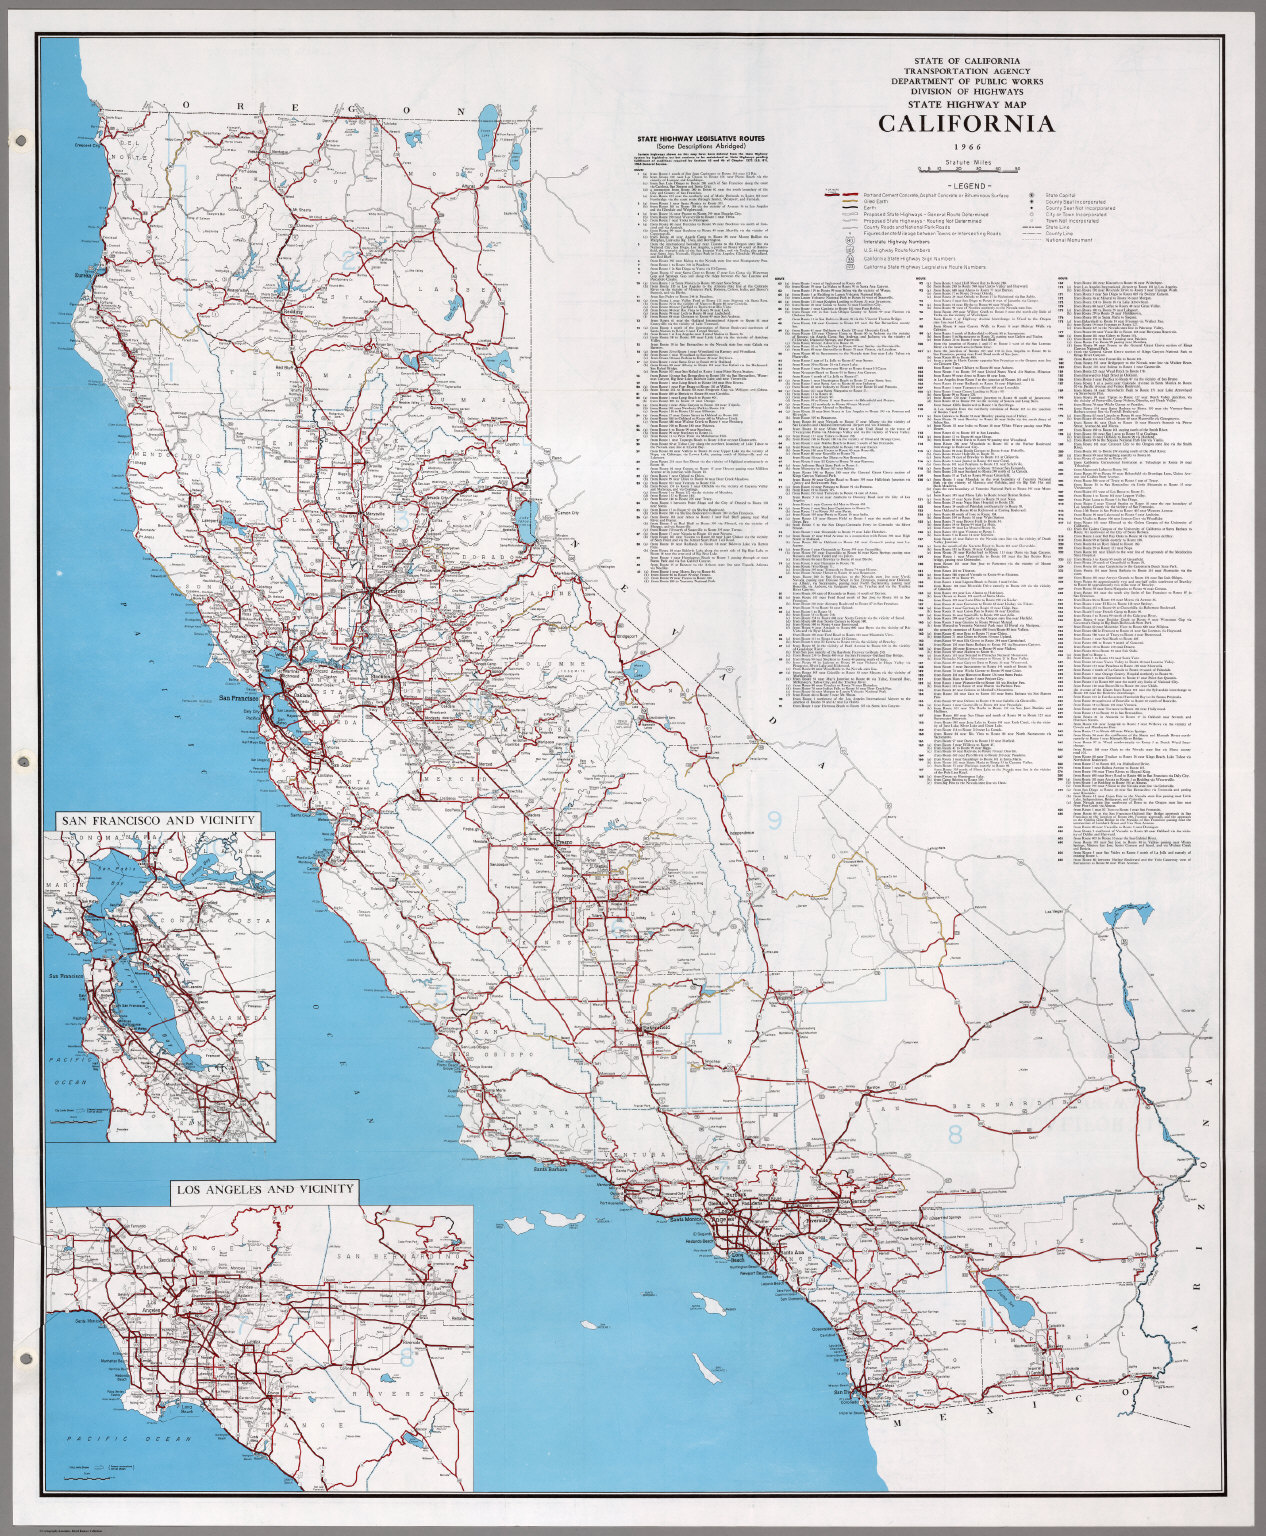 State Highway Map California David Rumsey Historical Map - California state map